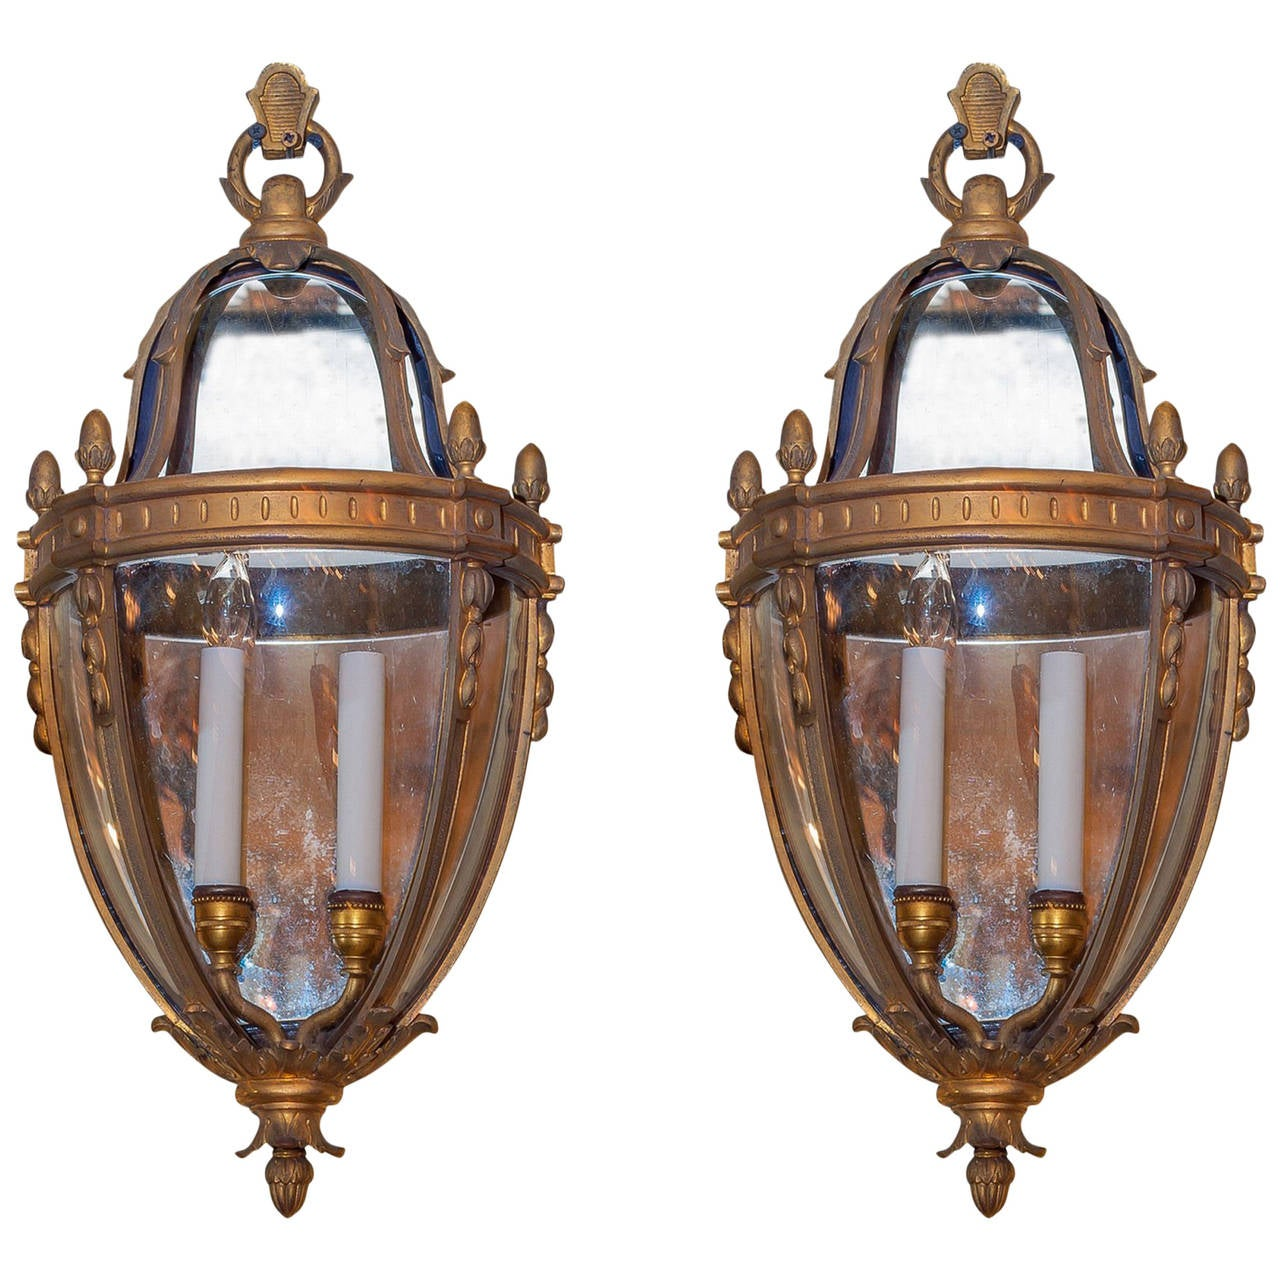 Unusual Pair Of Lantern Form Bronze Wall Light Sconces For